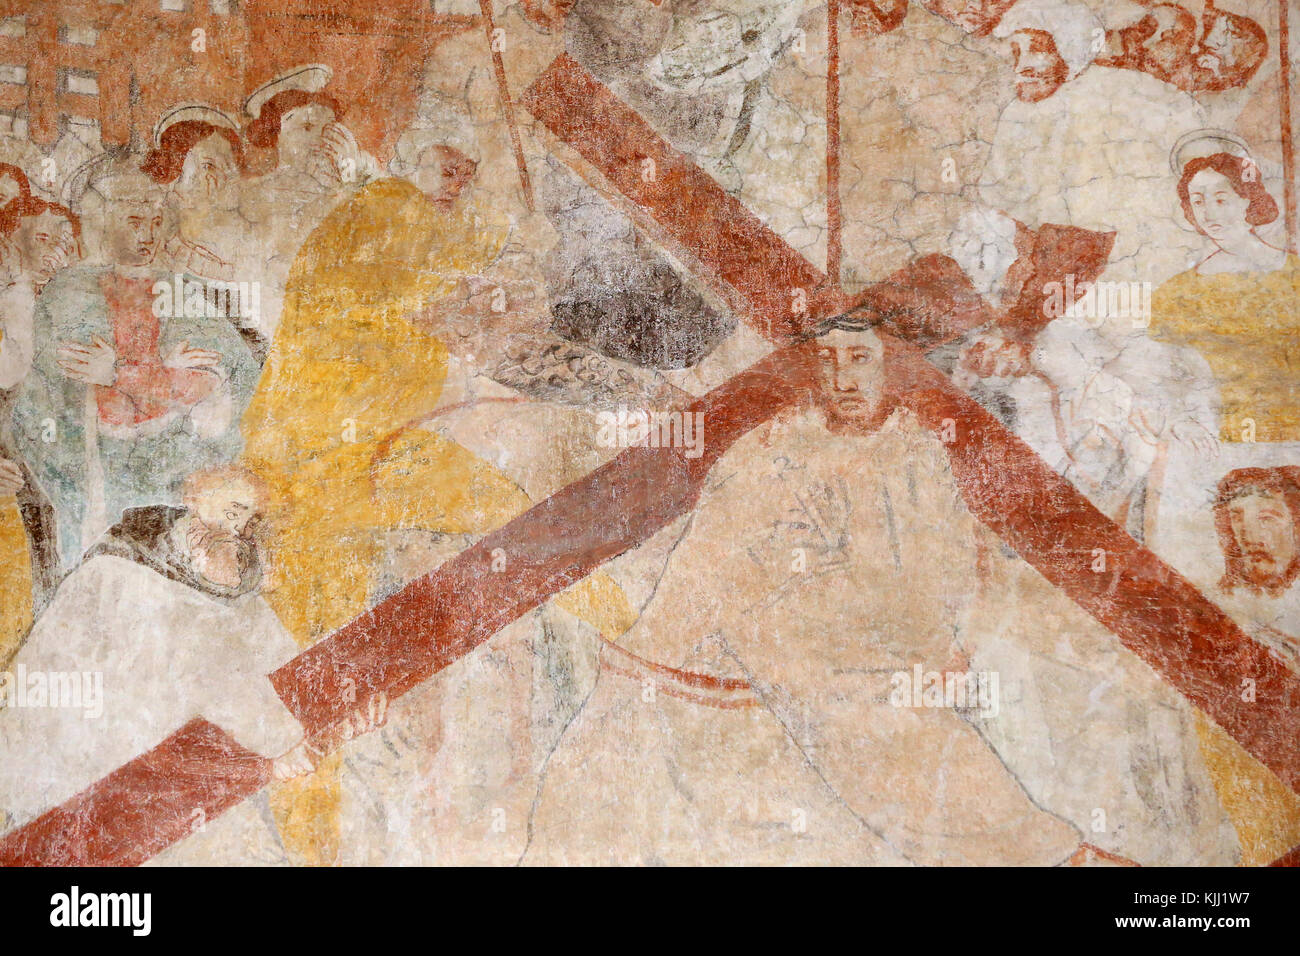 Vault de Lugny church.  16th century wall painting. Christ in his passion. Jesus accepts his cross.  France. - Stock Image